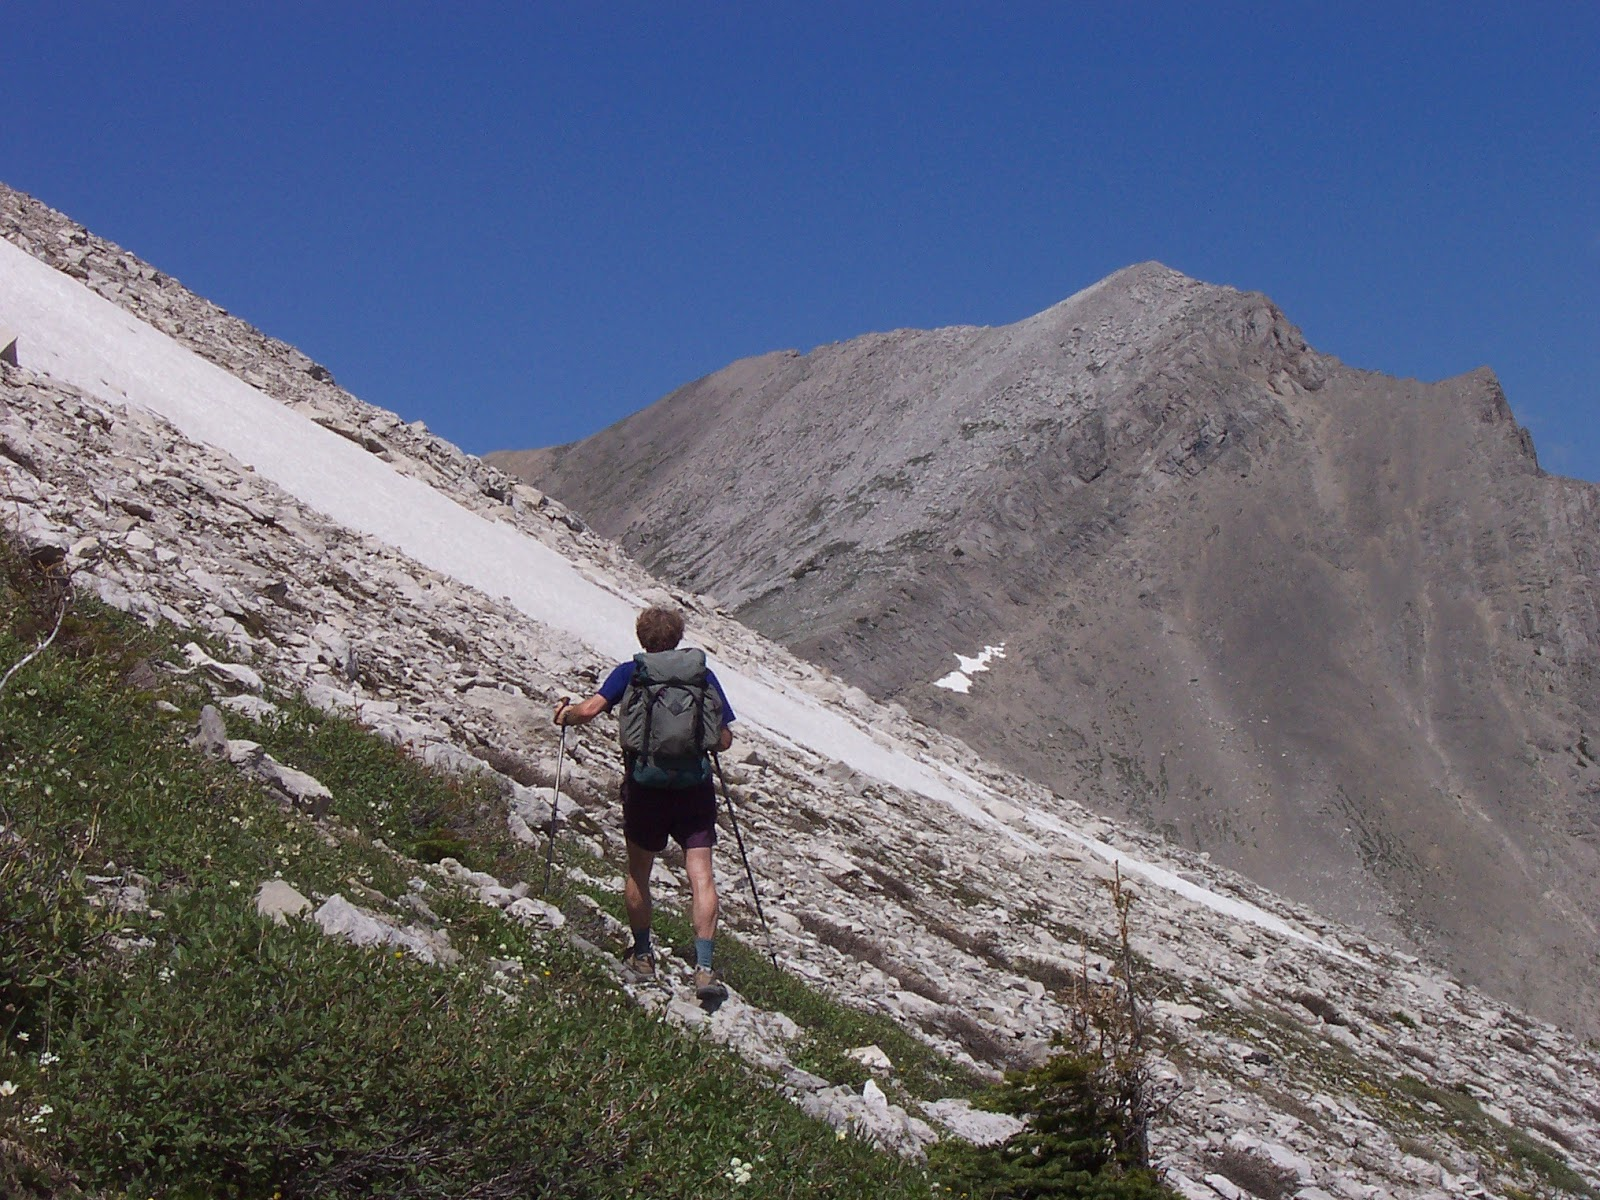 Out there with Tom: Poia, Scarface, Morningstar mountains